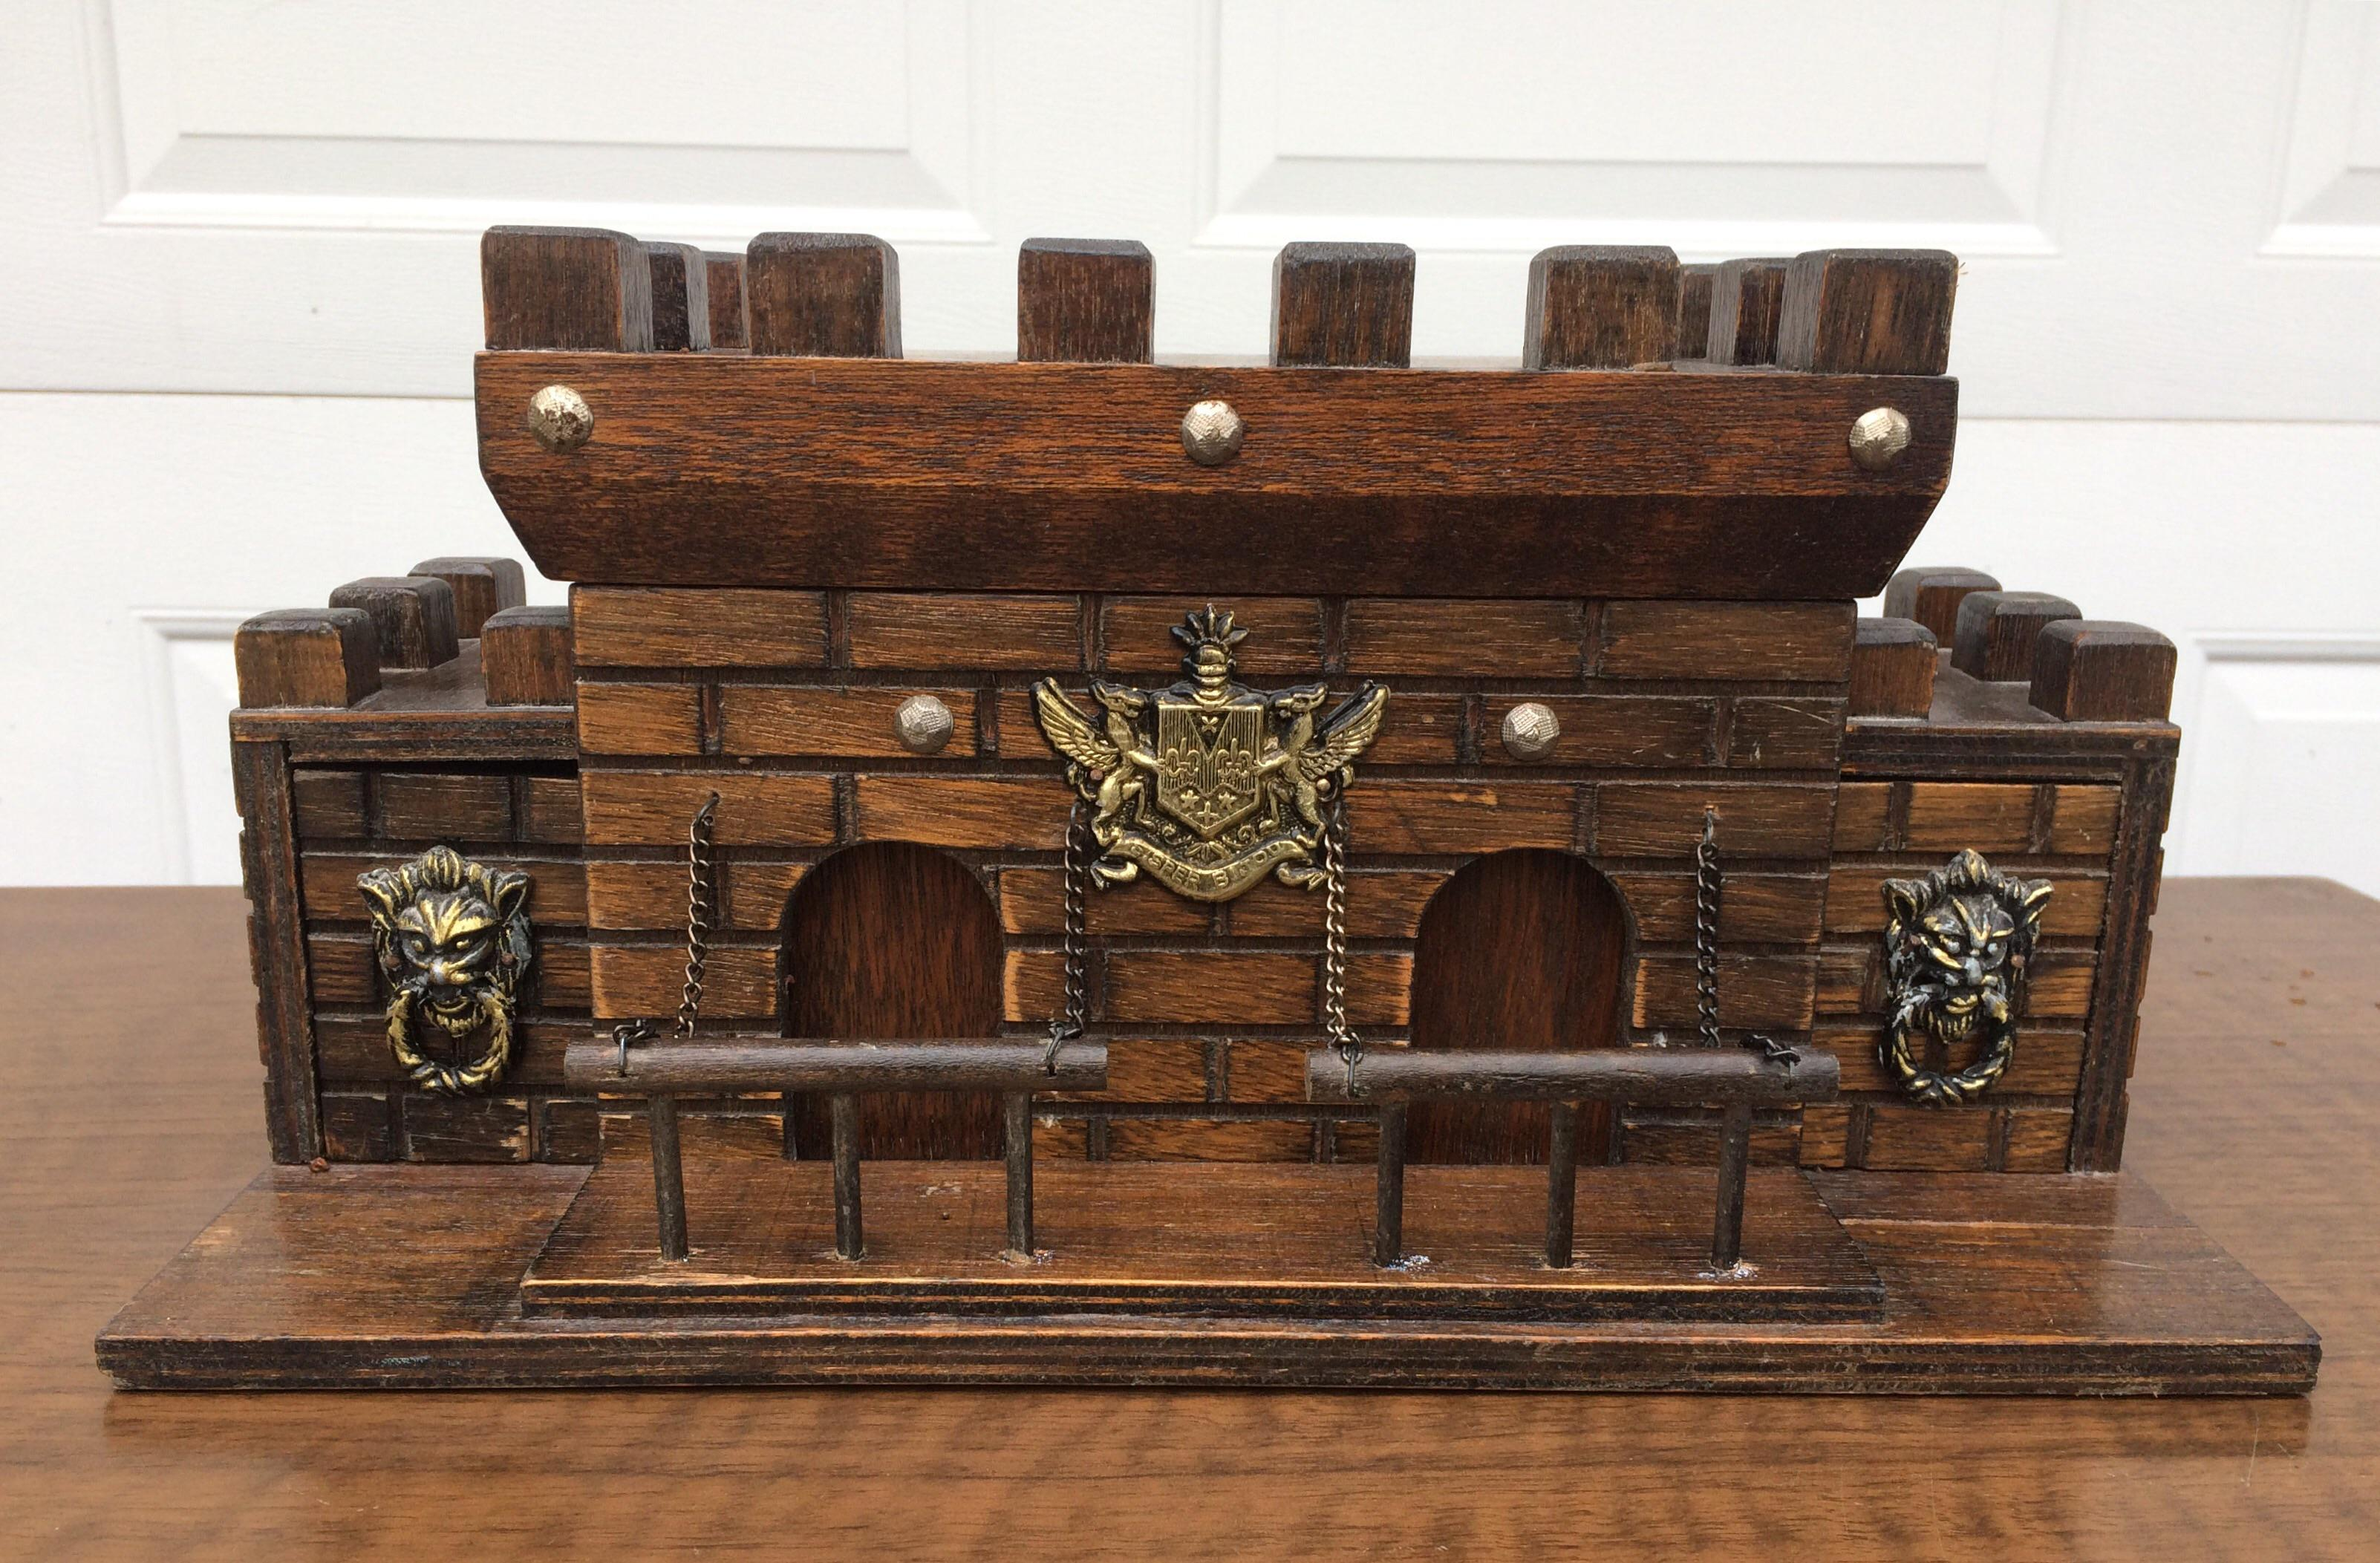 Vintage Wooden Castle Jewelry Box Chairish